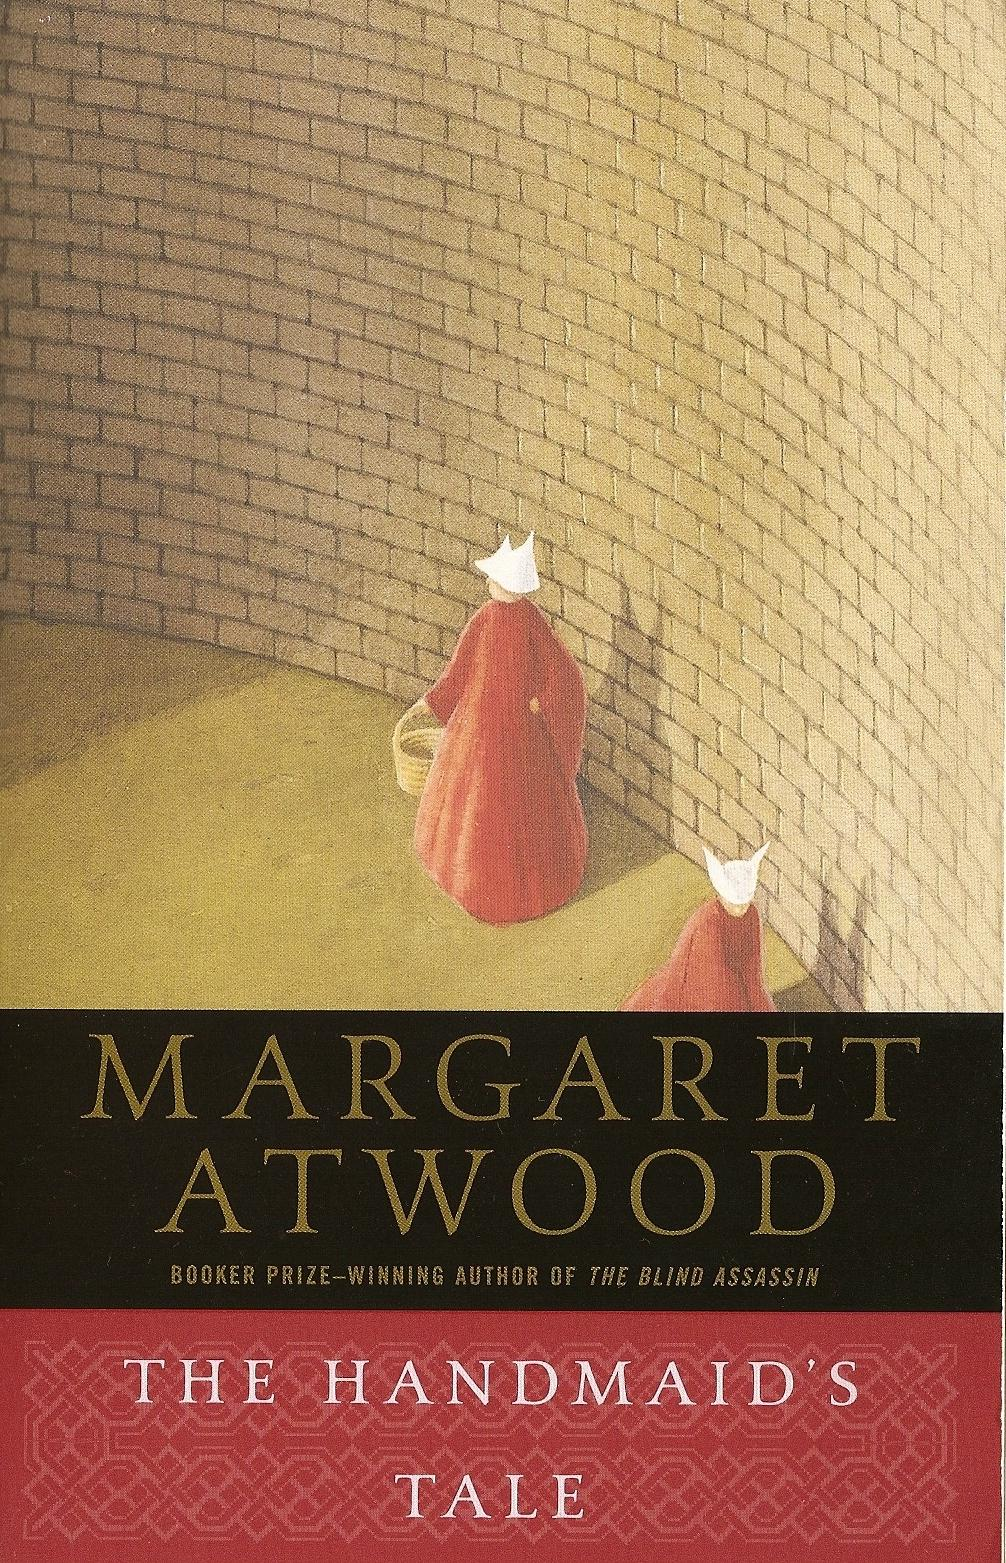 Image result for handmaid's tale book cover